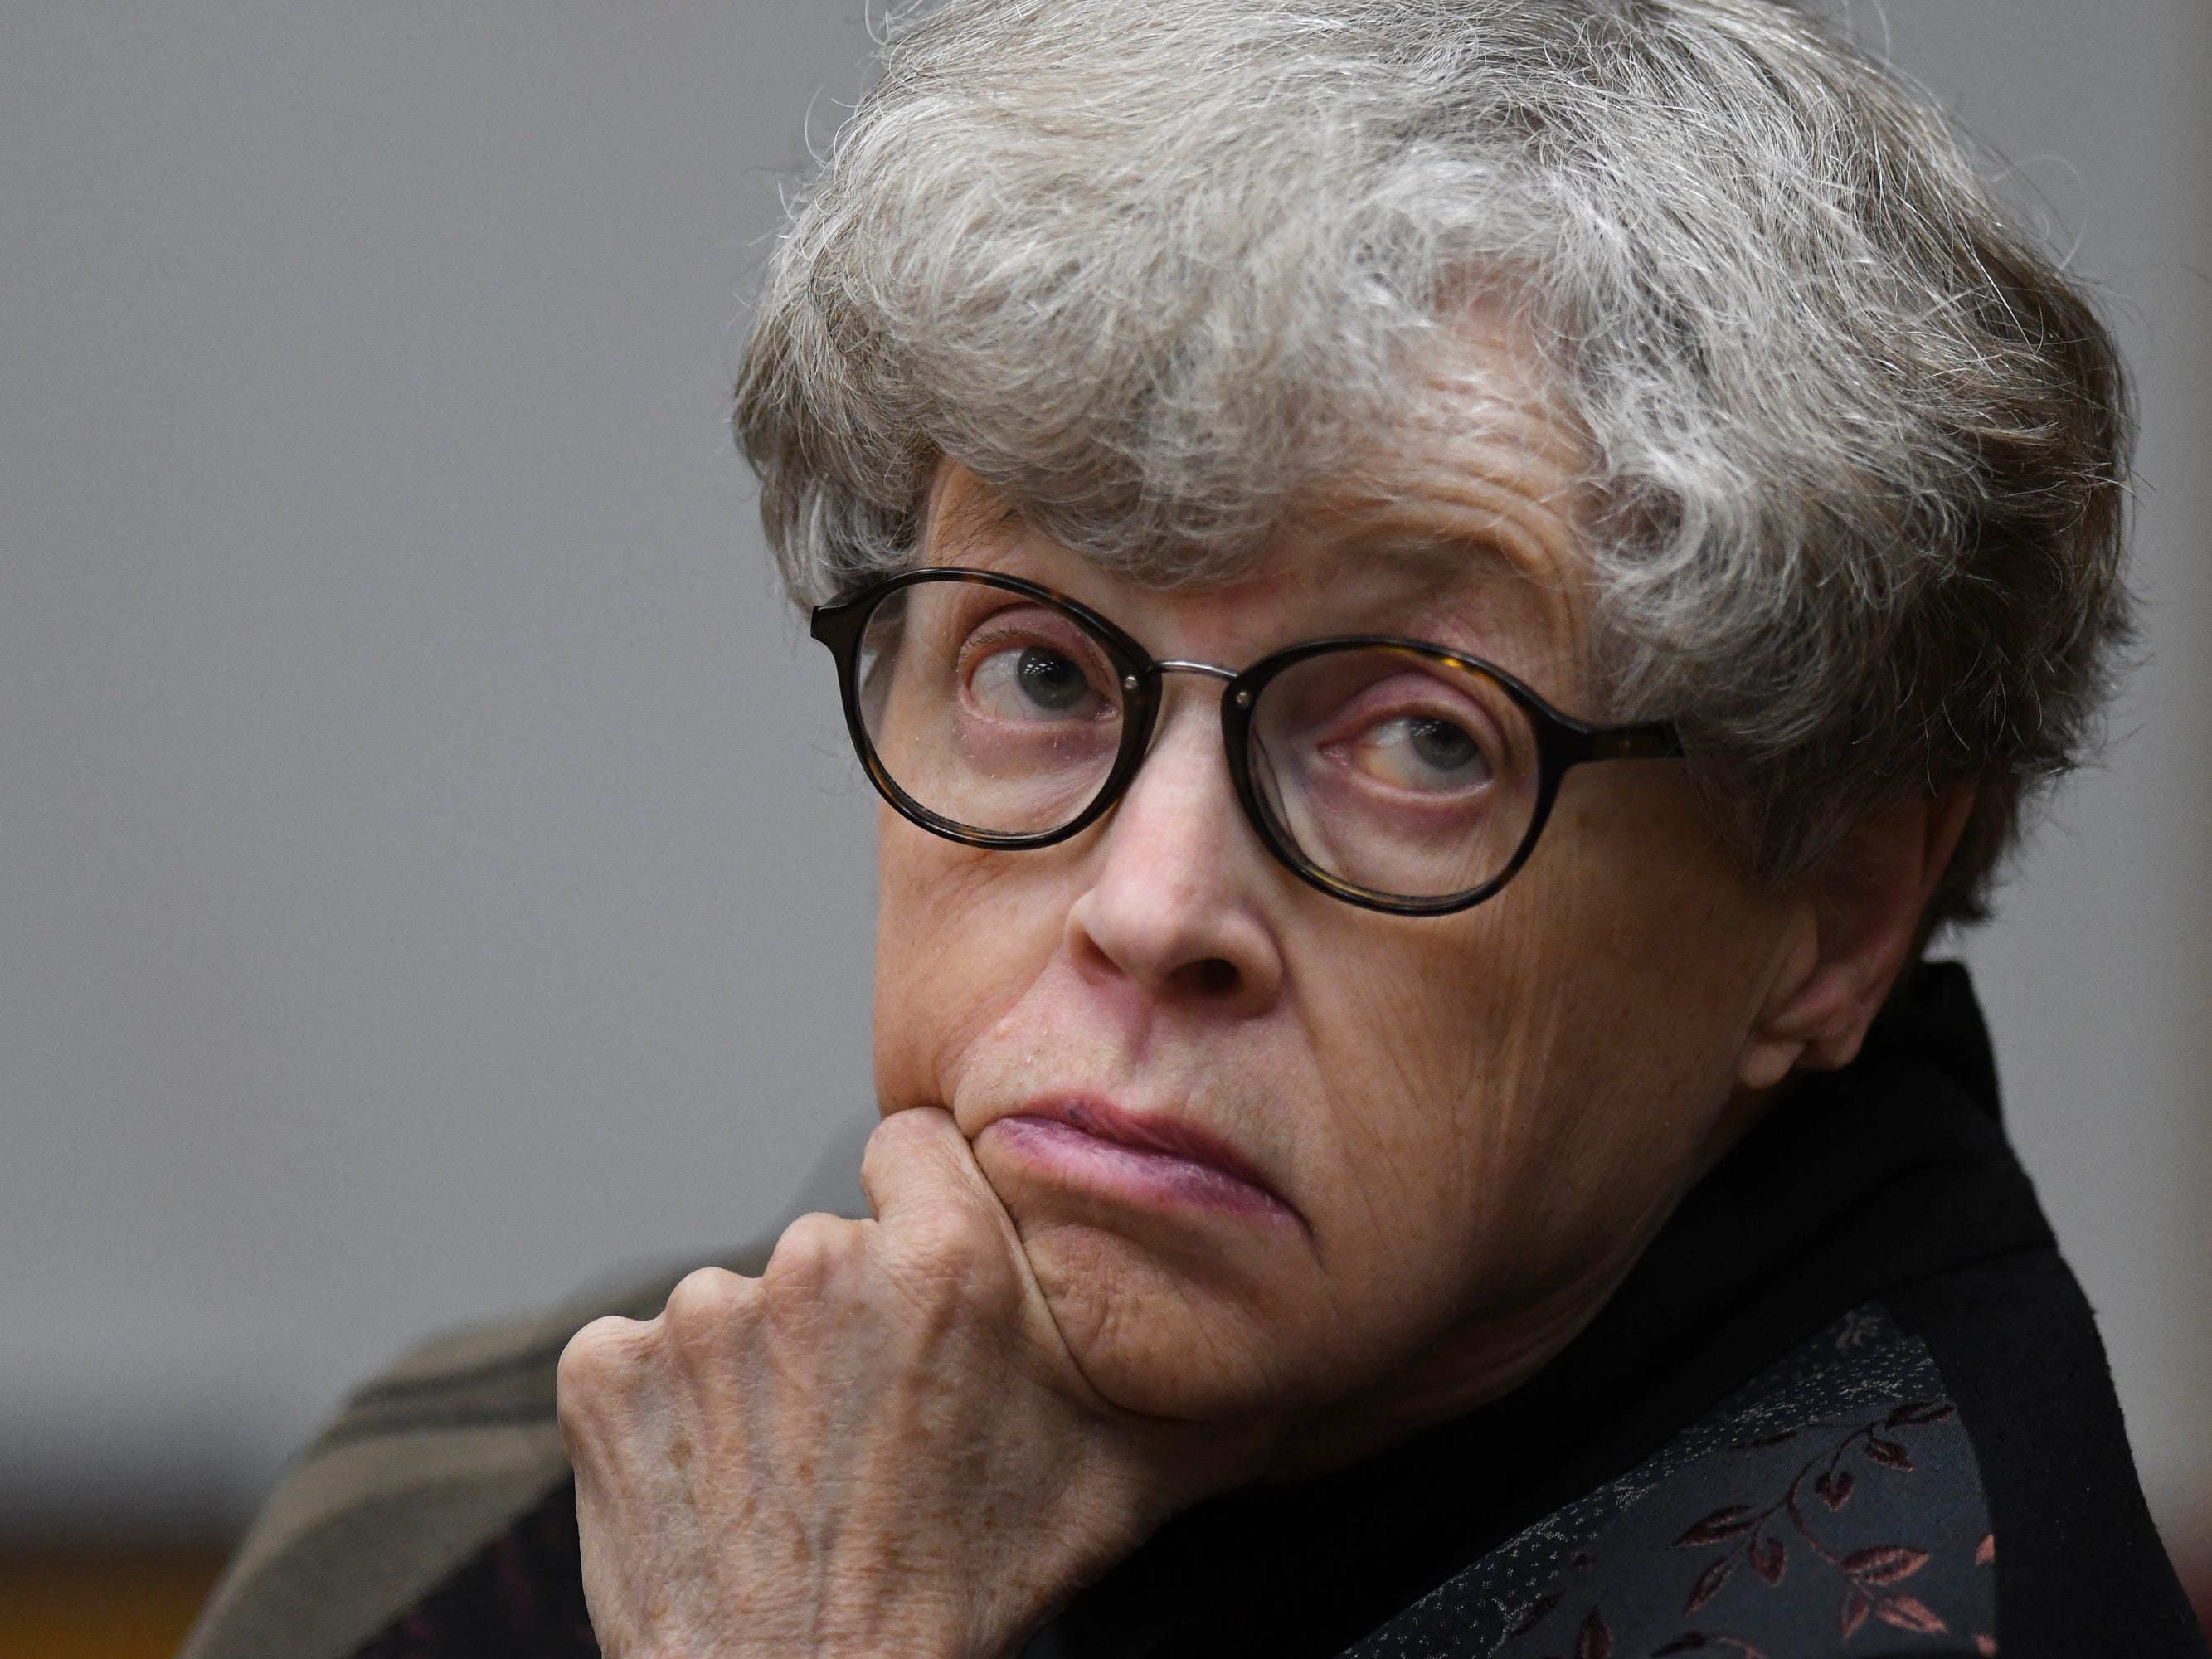 Lou Anna Simon's attorneys say no Michigan State officials or documents used Nassar's name in 2014